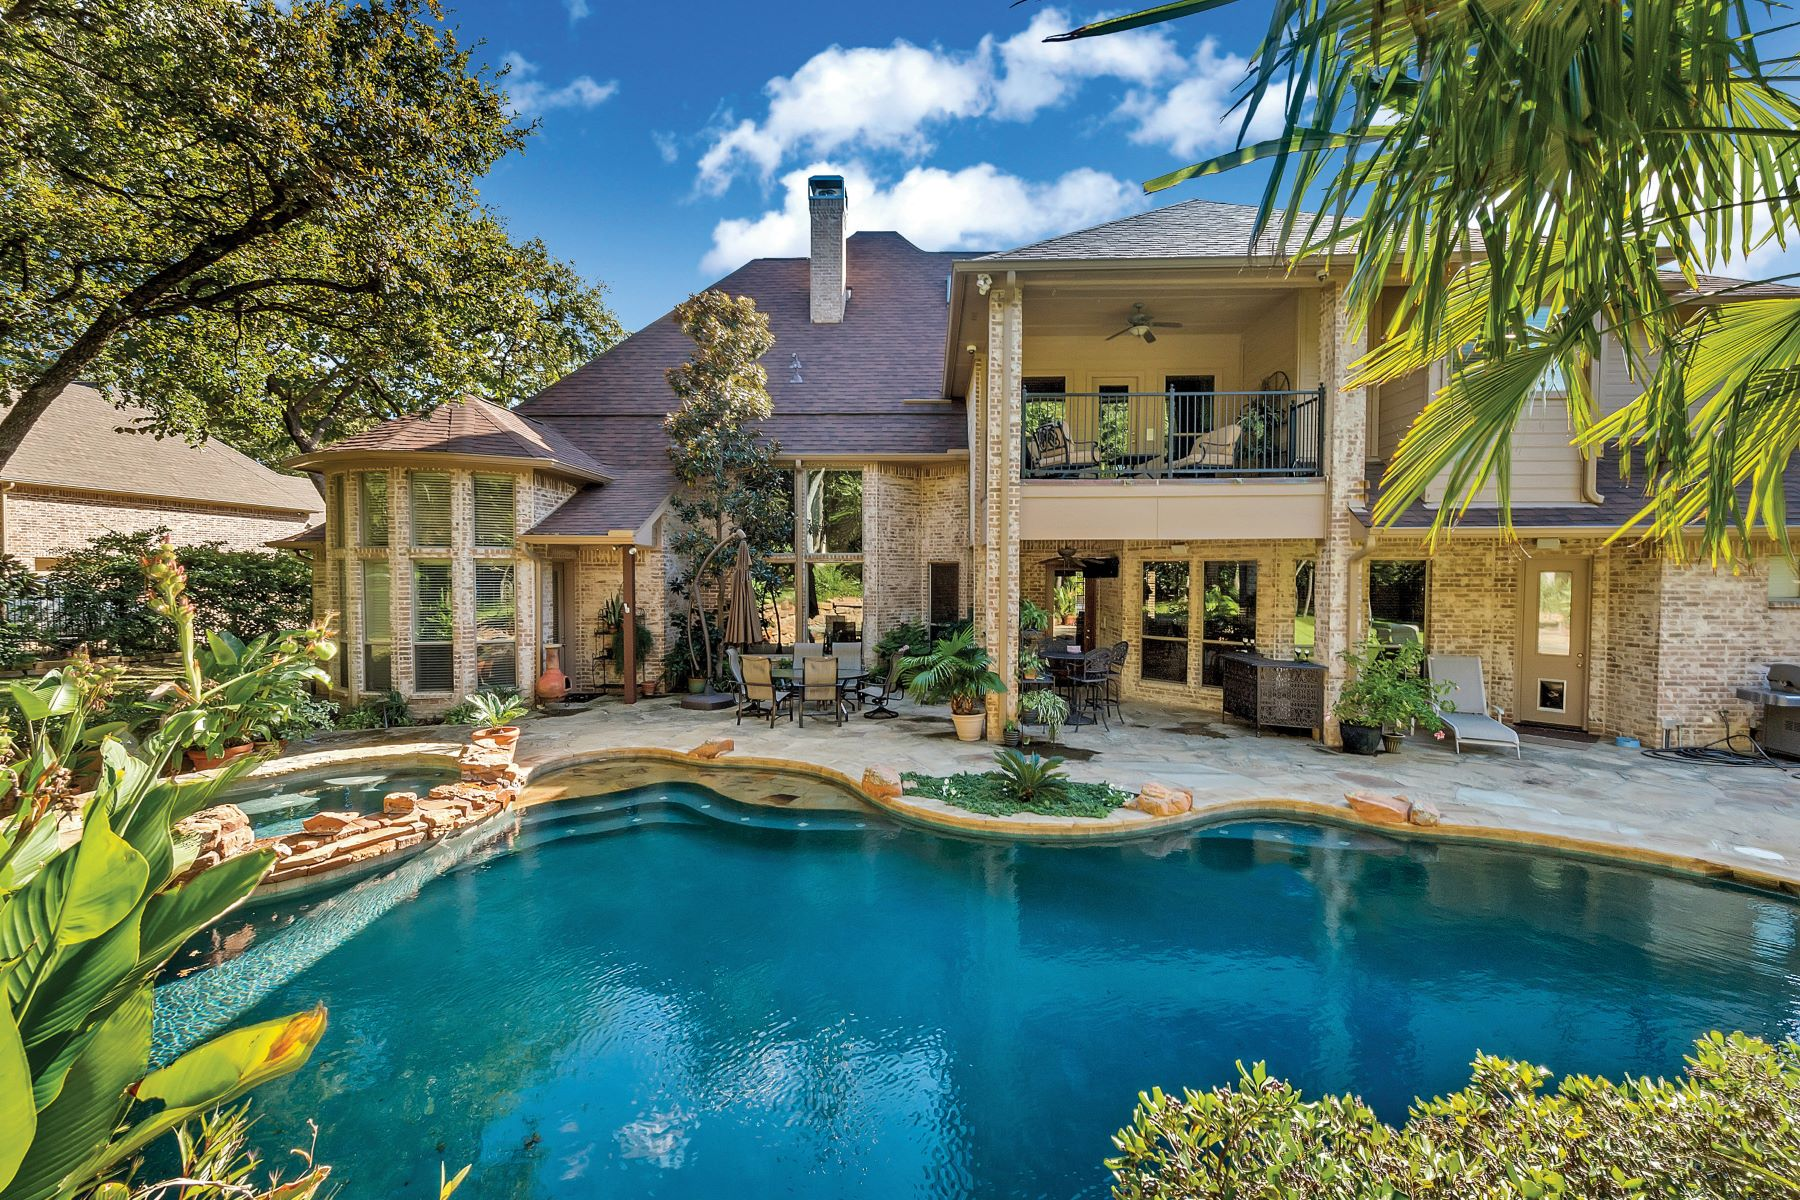 Single Family Homes for Sale at Stunning Garabedian Custom on Private 1 Acre Lot 408 King Ranch Road Southlake, Texas 76092 United States